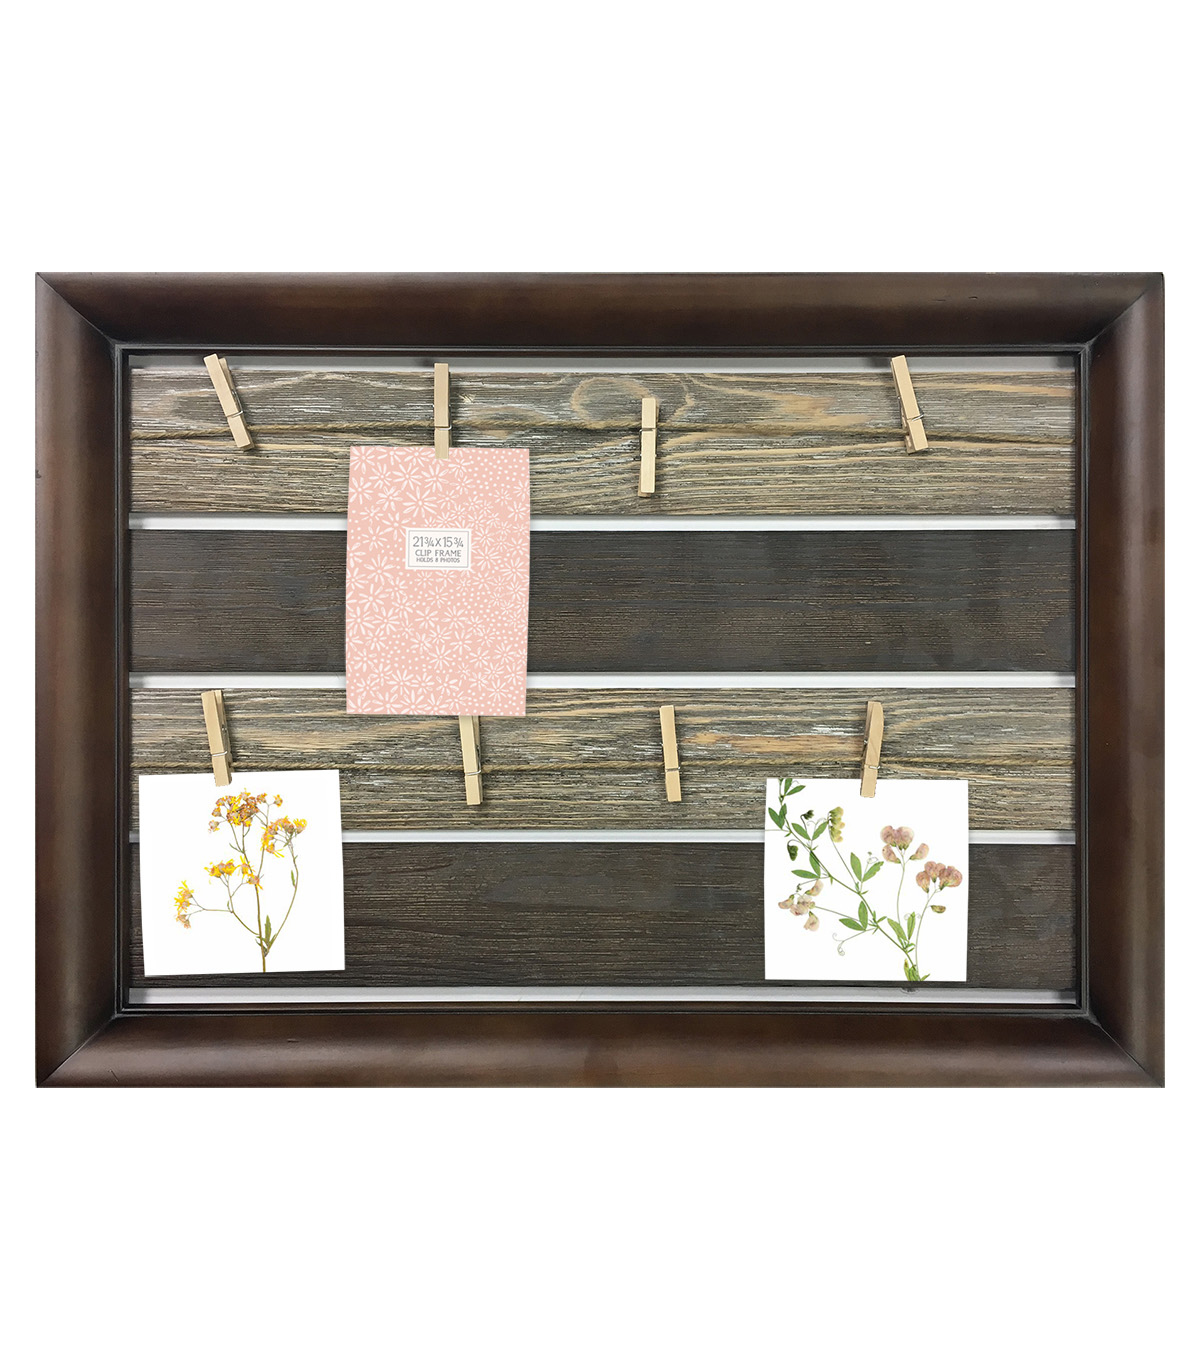 a7015a7280cb Dark Wood Plank Collage Frame with Rope   8 Clips 21.75 u0027 u0027x15.